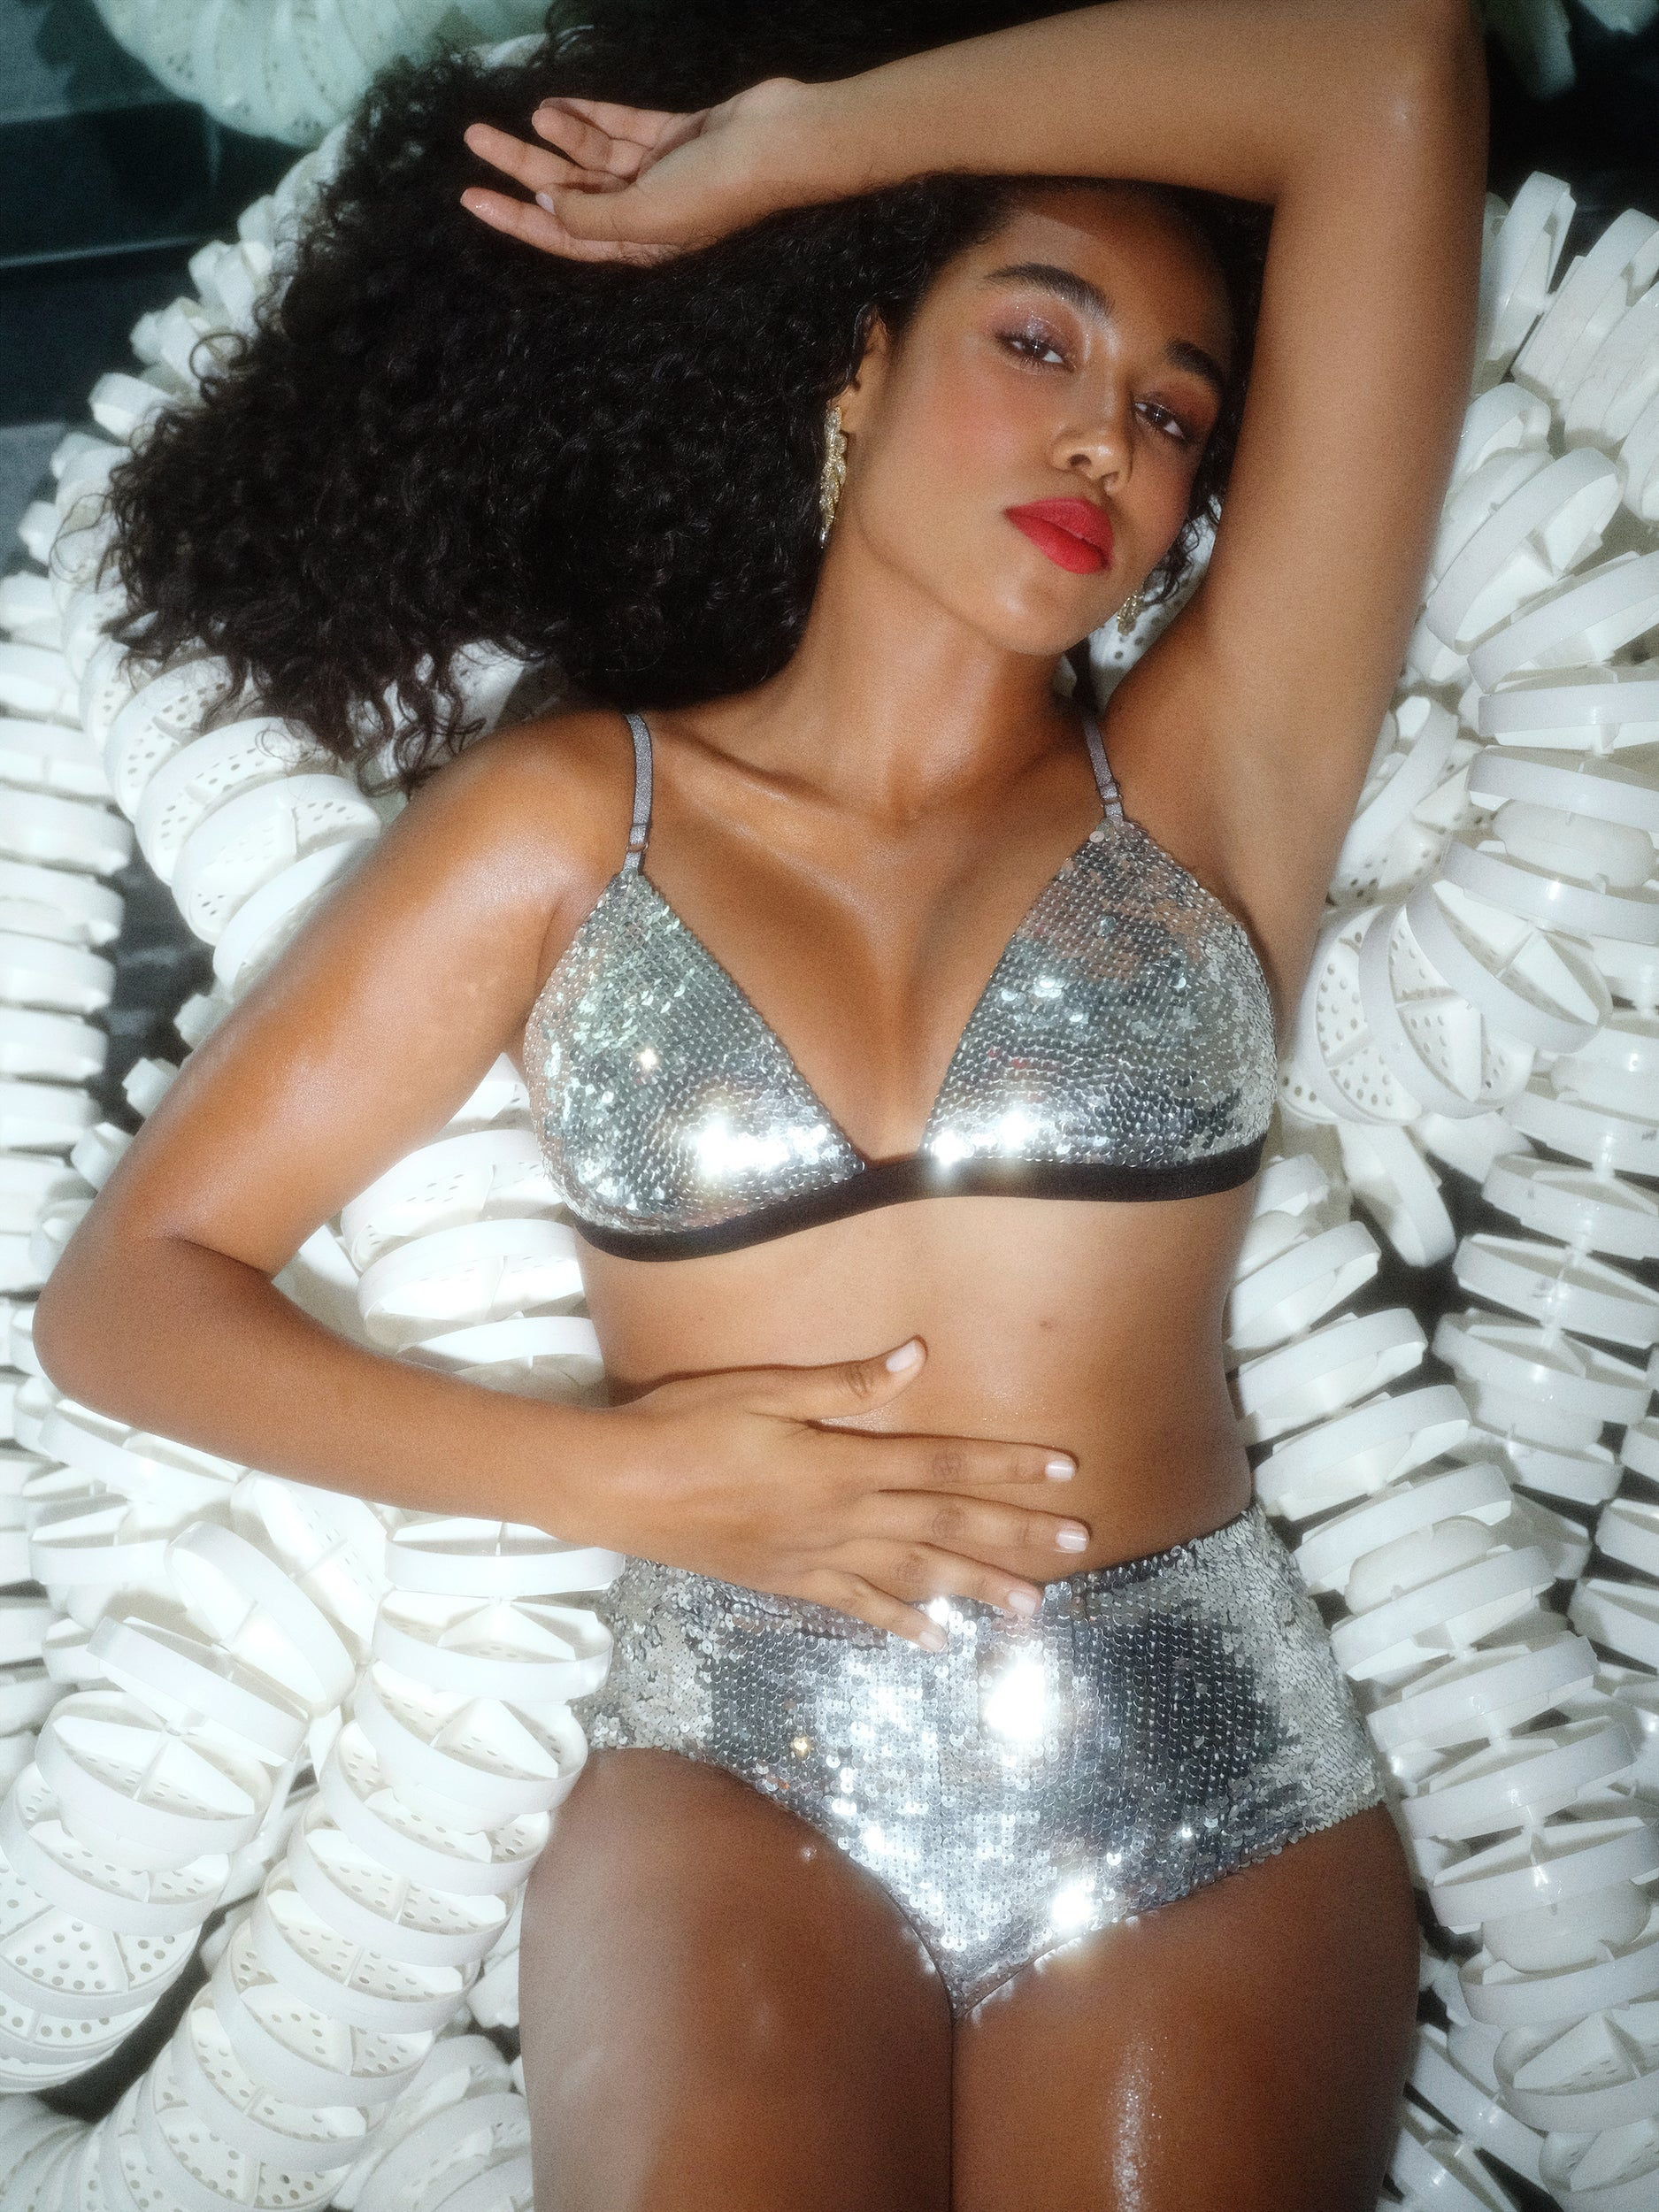 Ariel Triangle Bra - Silver Diamond